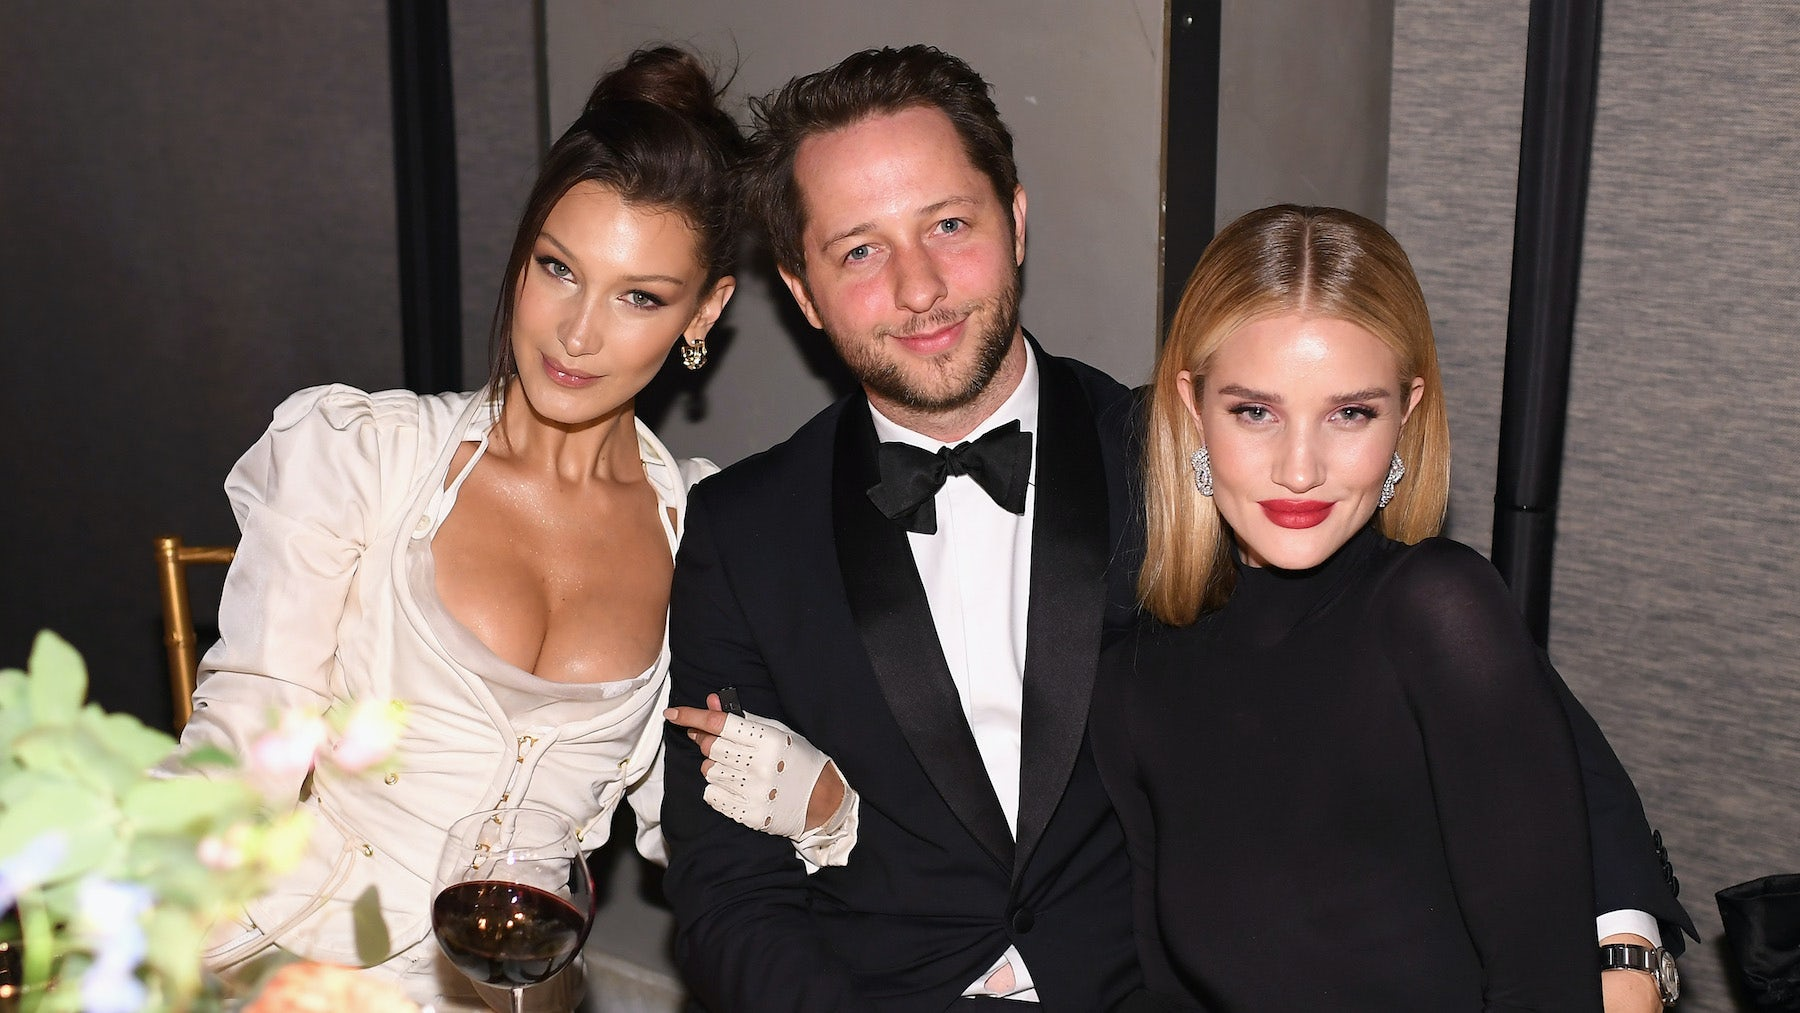 Article cover of Derek Blasberg's Tips For Getting Ahead in Fashion